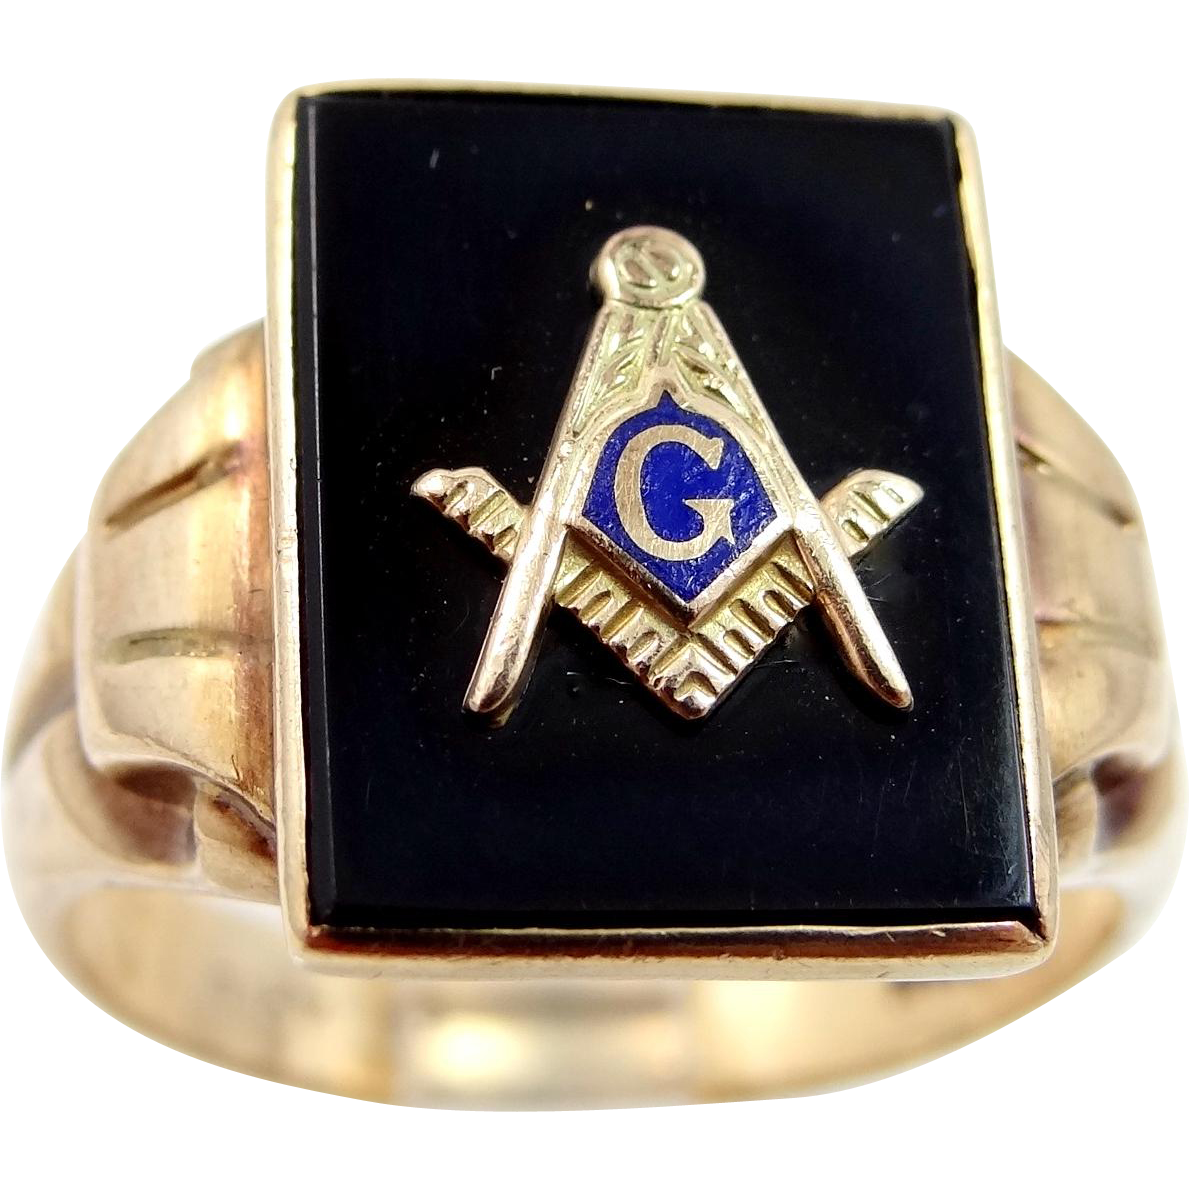 Antique 10k Gold Masonic Ring with Enamel and Onyx